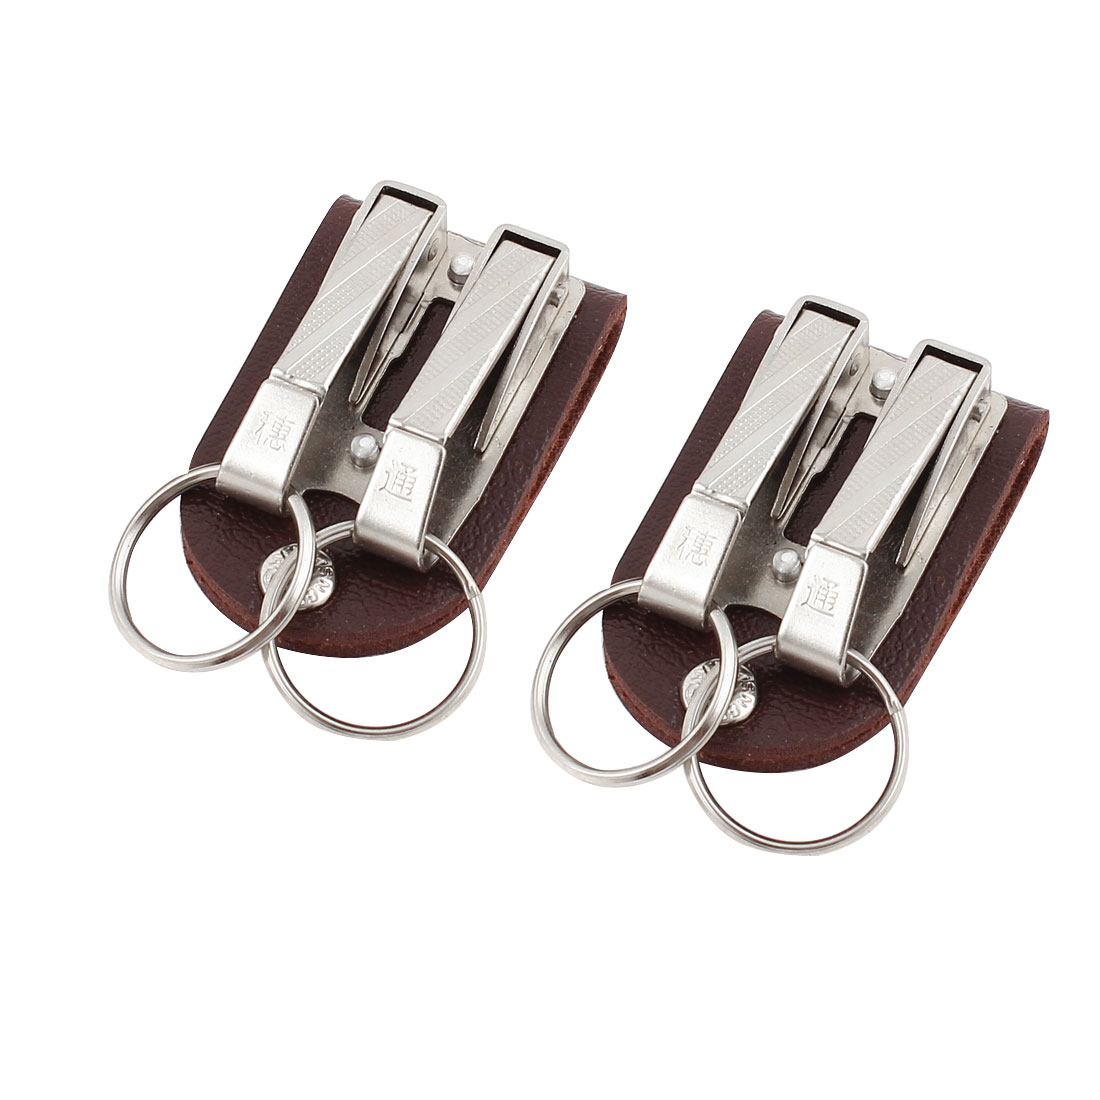 2Pcs Faux Leather Security Belt Buckle Clip Keyring Keychain Key Holder Brown